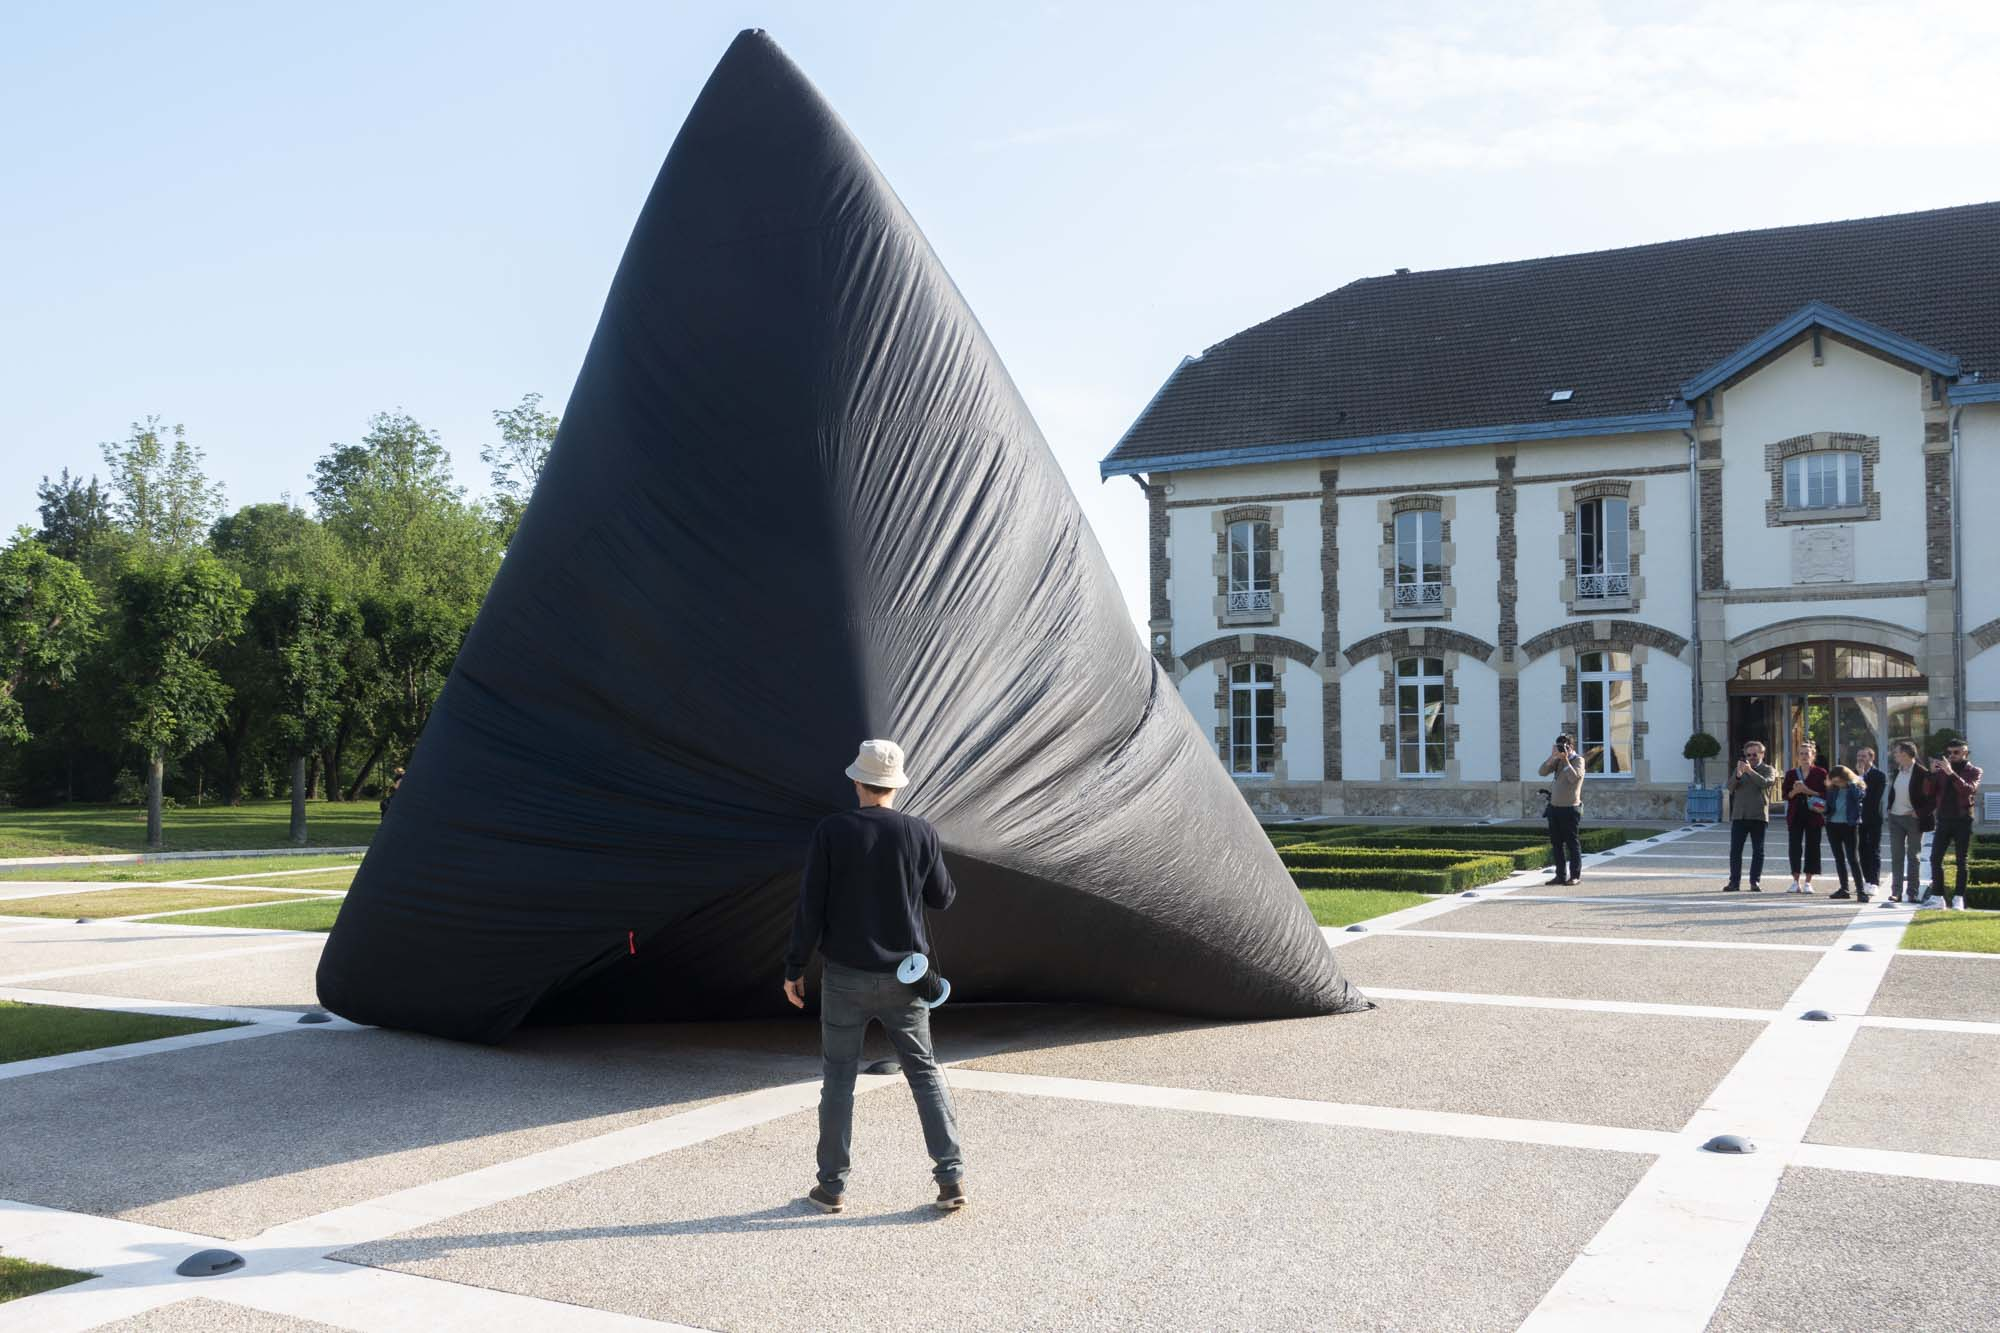 Tomás Saraceno is holding the Aerocene sculpture during his performance at Maison Ruinart in Reims